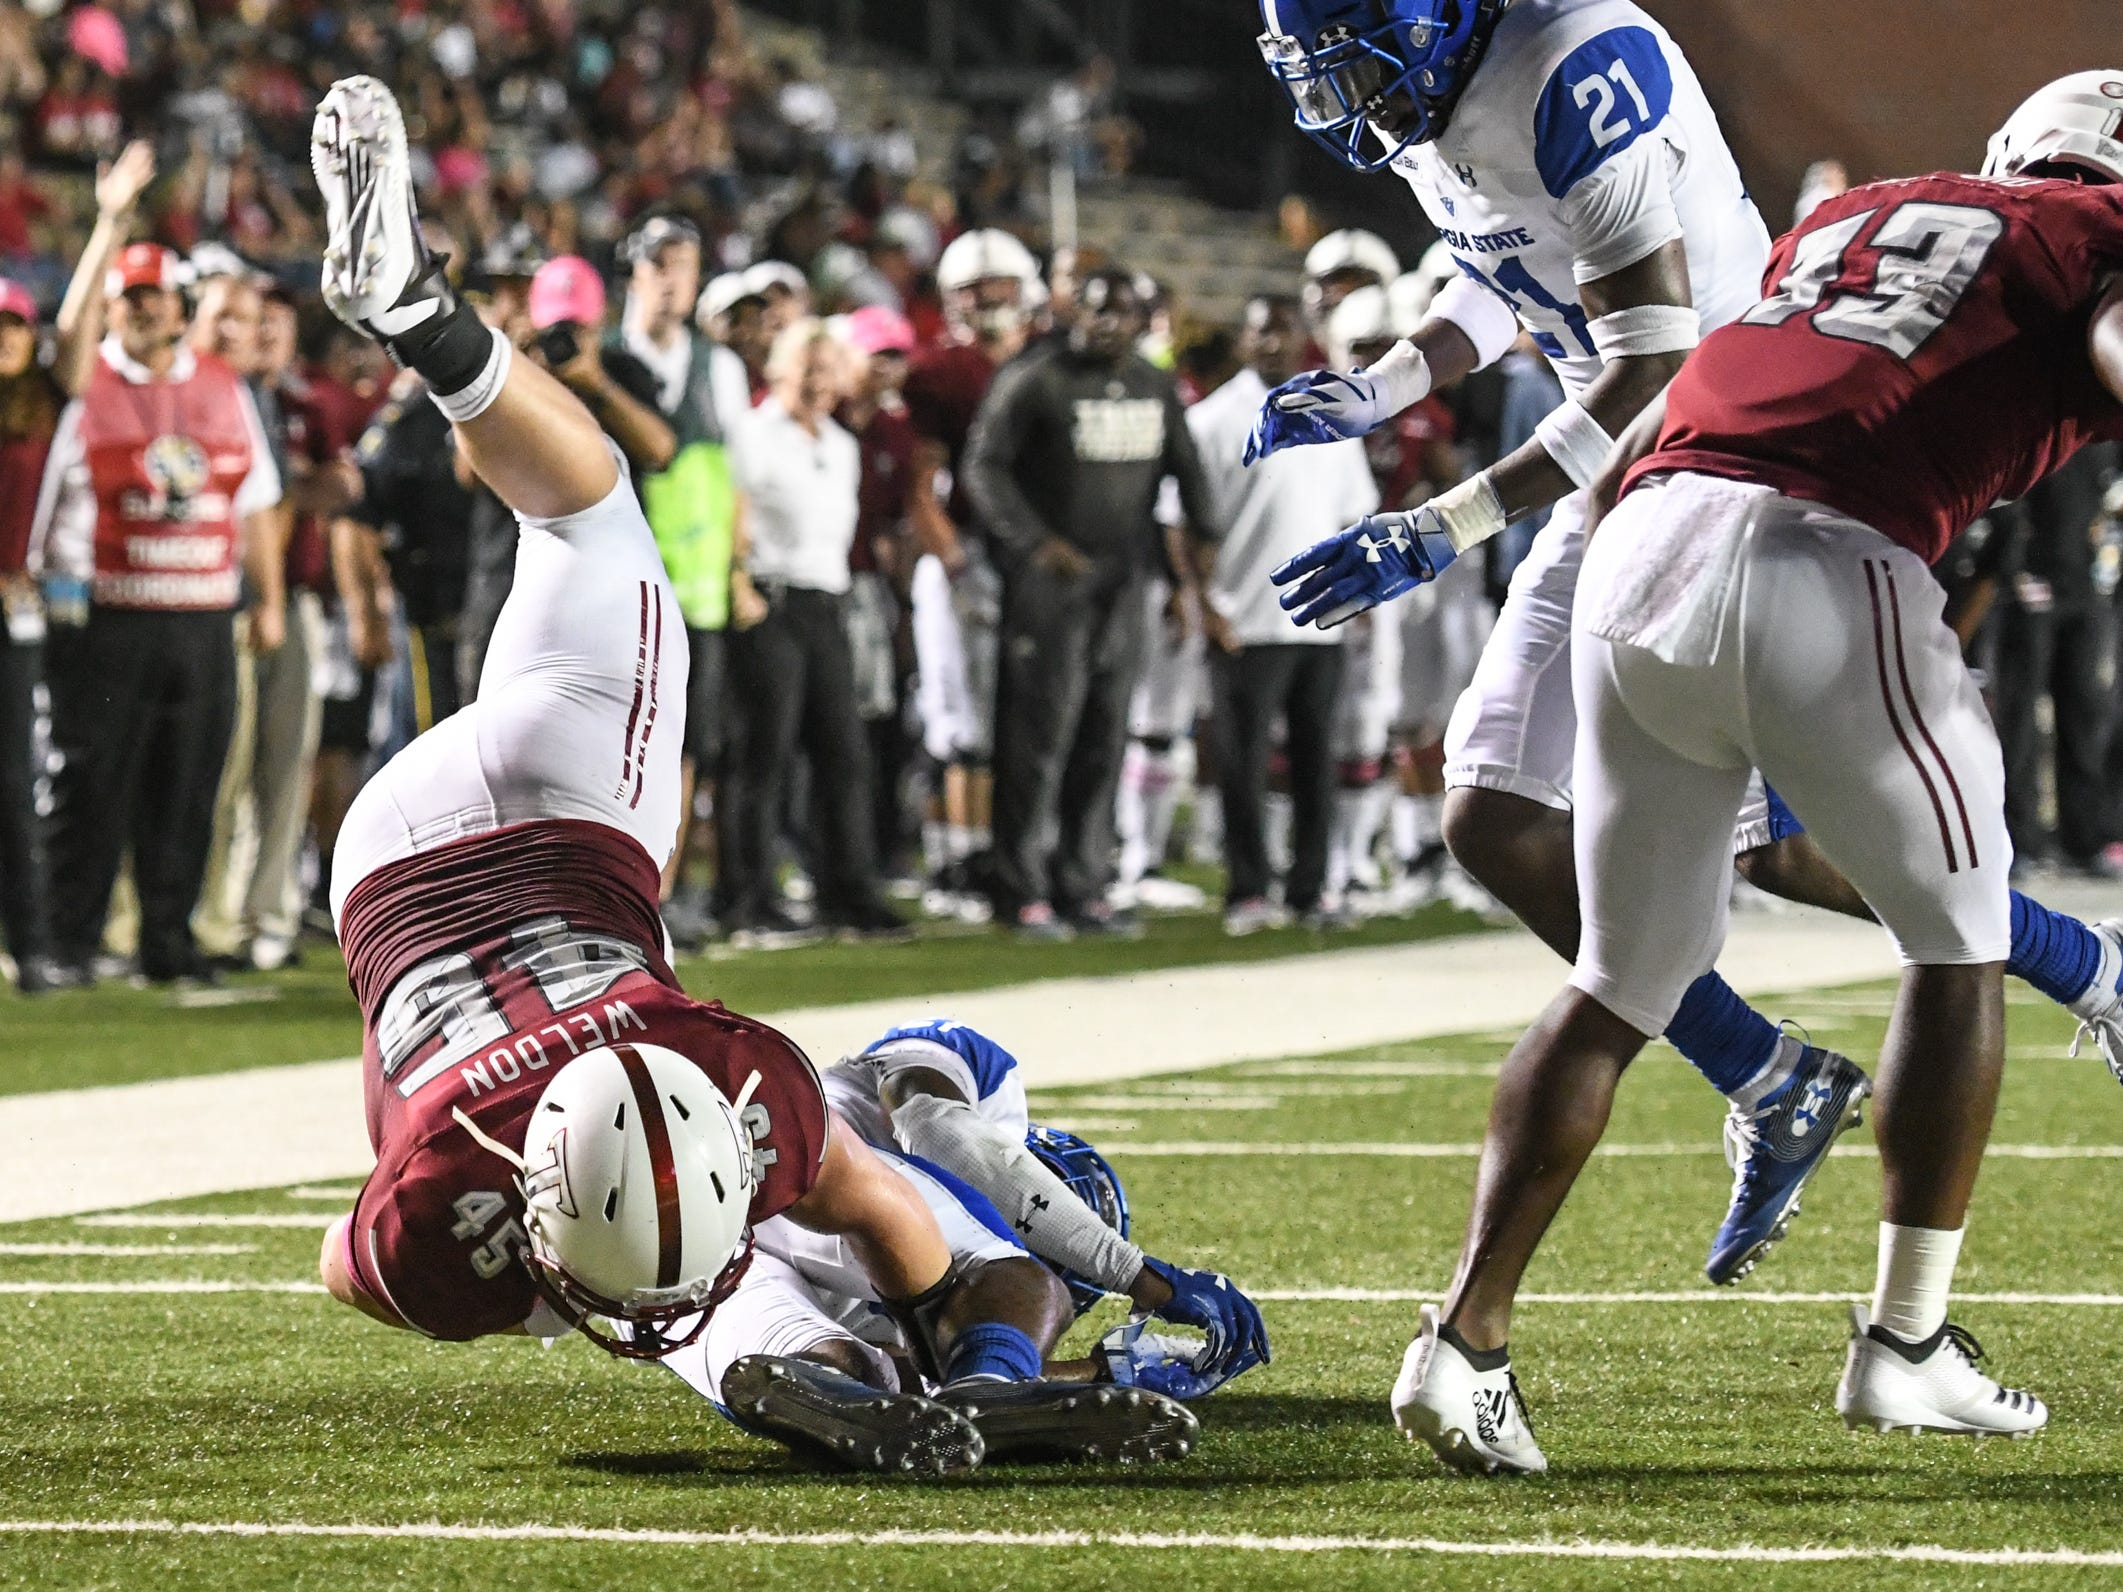 Troy Trojans fullback Zacc Weldon (45) dives to the one-yard line against Georgia State at Veteran's Memorial Stadium in Troy, Ala., on Thursday, Oct. 4, 2018. (Chip Dillard/Special to the Montgomery Advertiser)